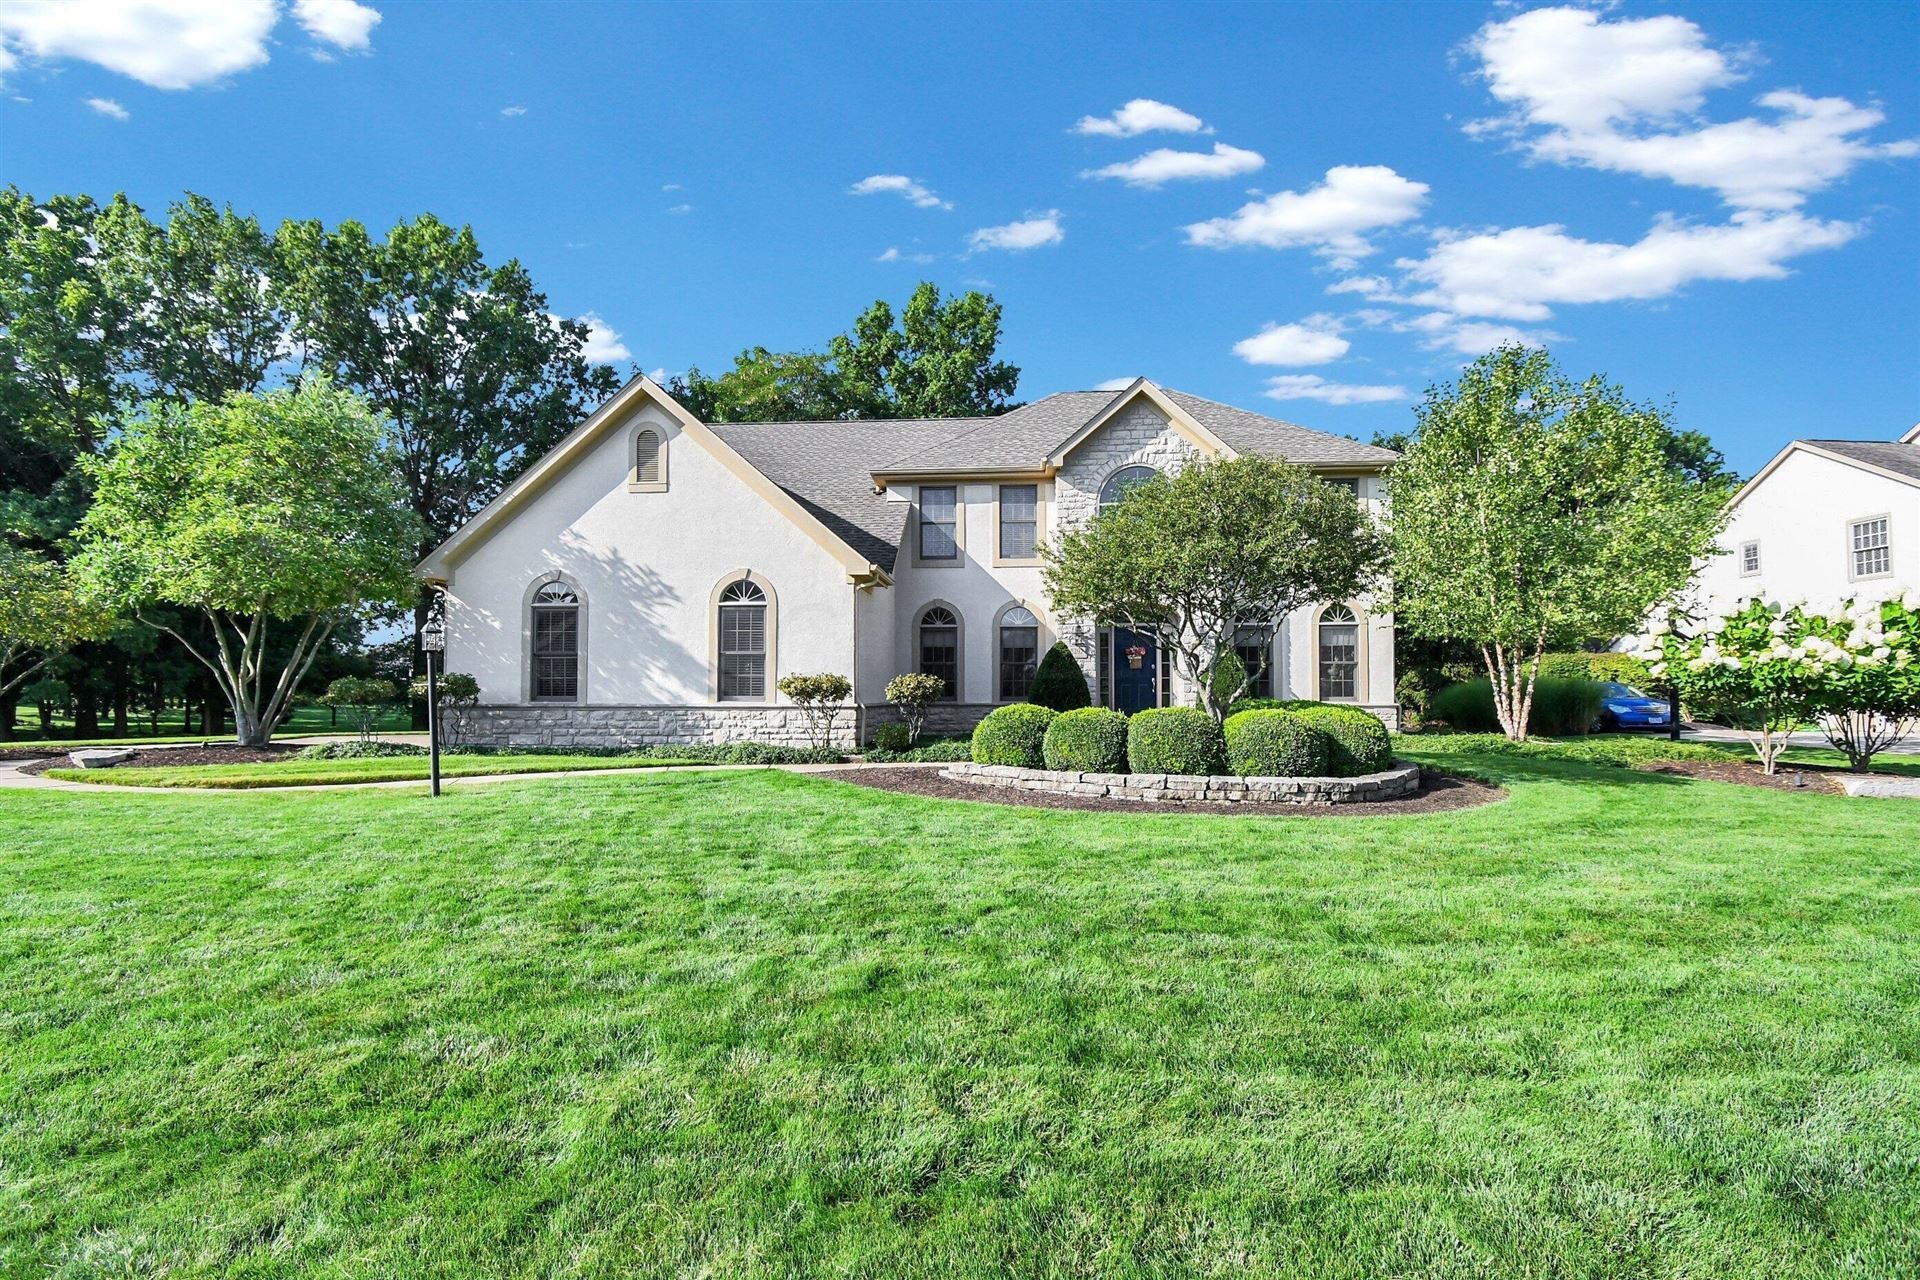 Photo of 8292 Rookery Way, Westerville, OH 43082 (MLS # 221036300)